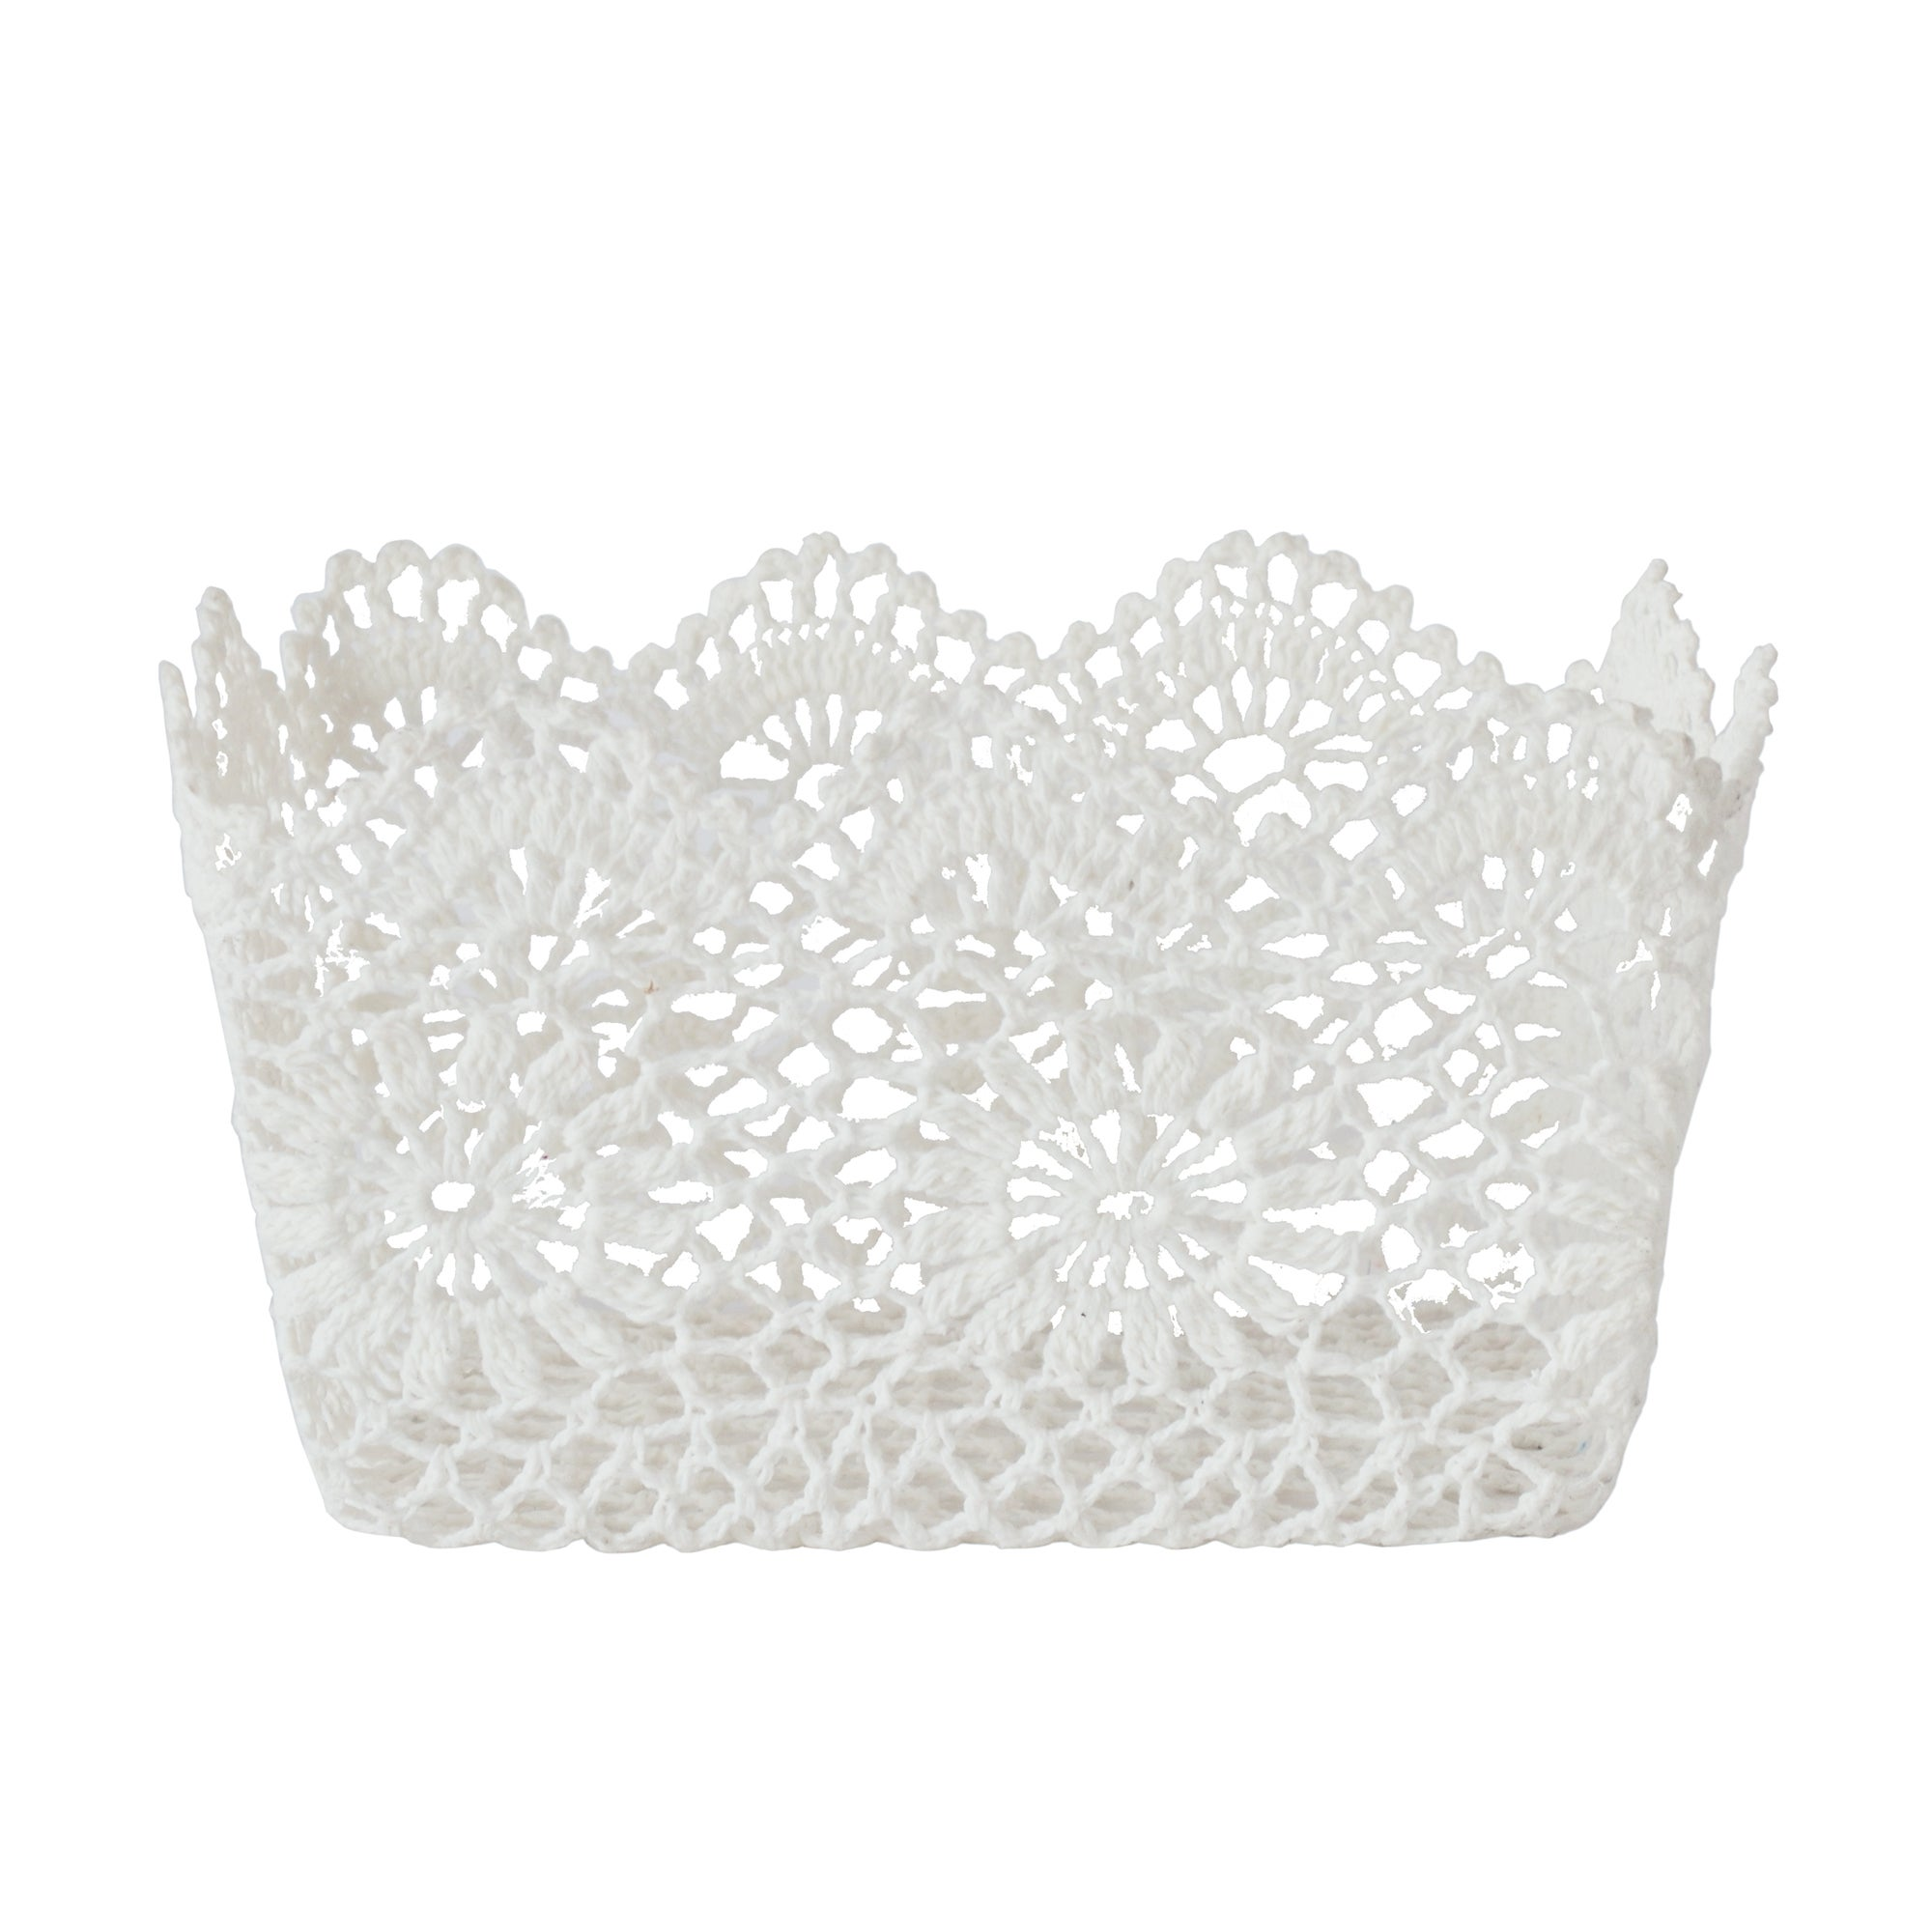 White Cotton Crochet Storage Basket